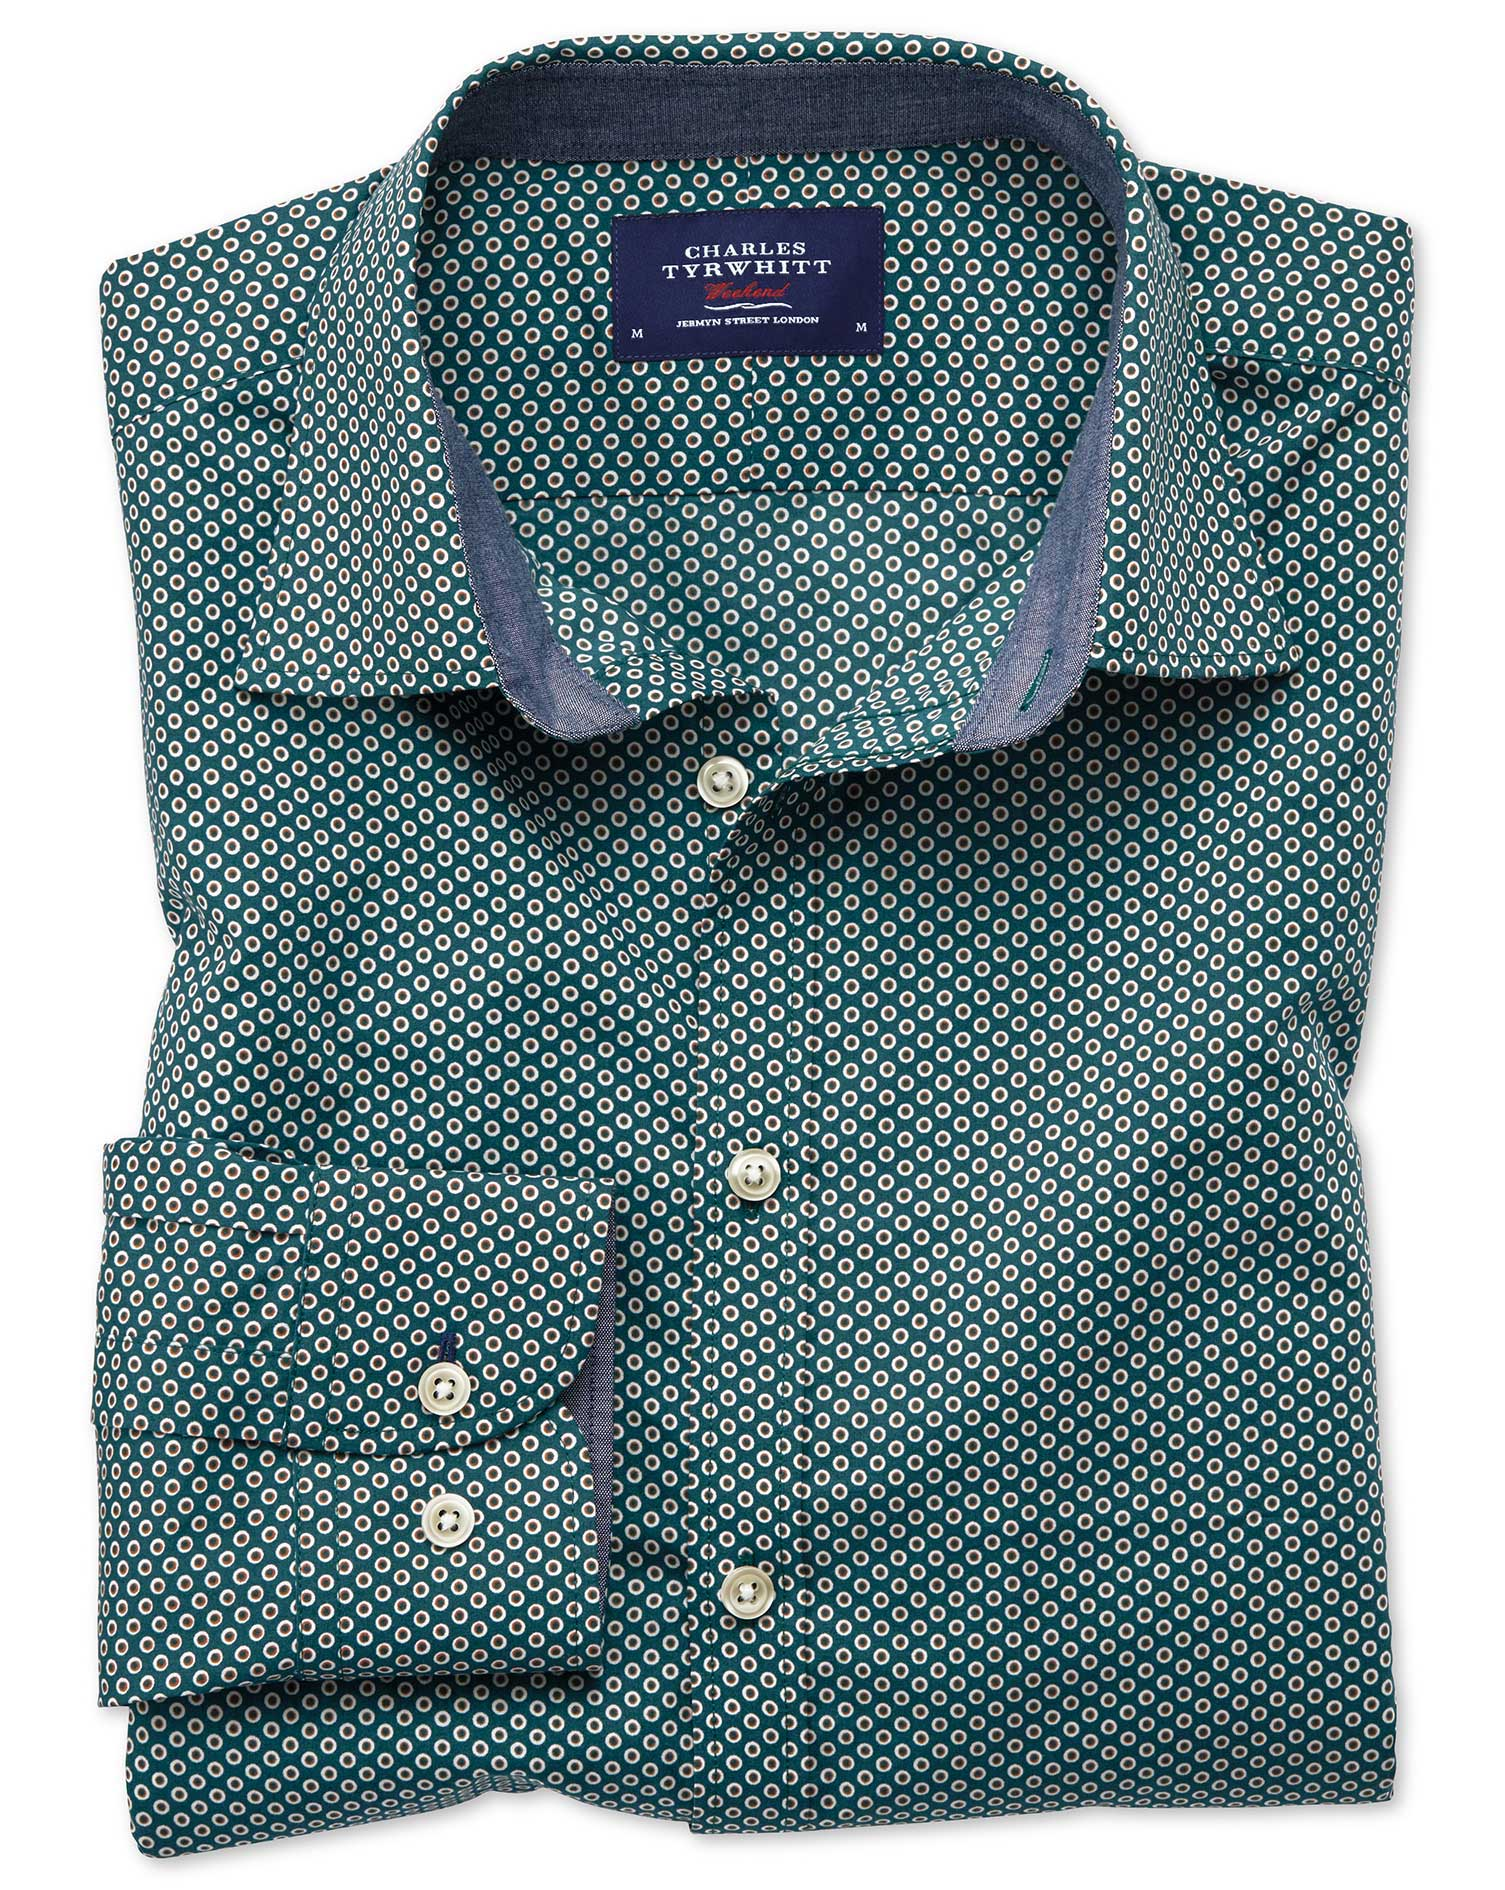 Extra Slim Fit Dark Green Spot Print Cotton Shirt Single Cuff Size XS by Charles Tyrwhitt